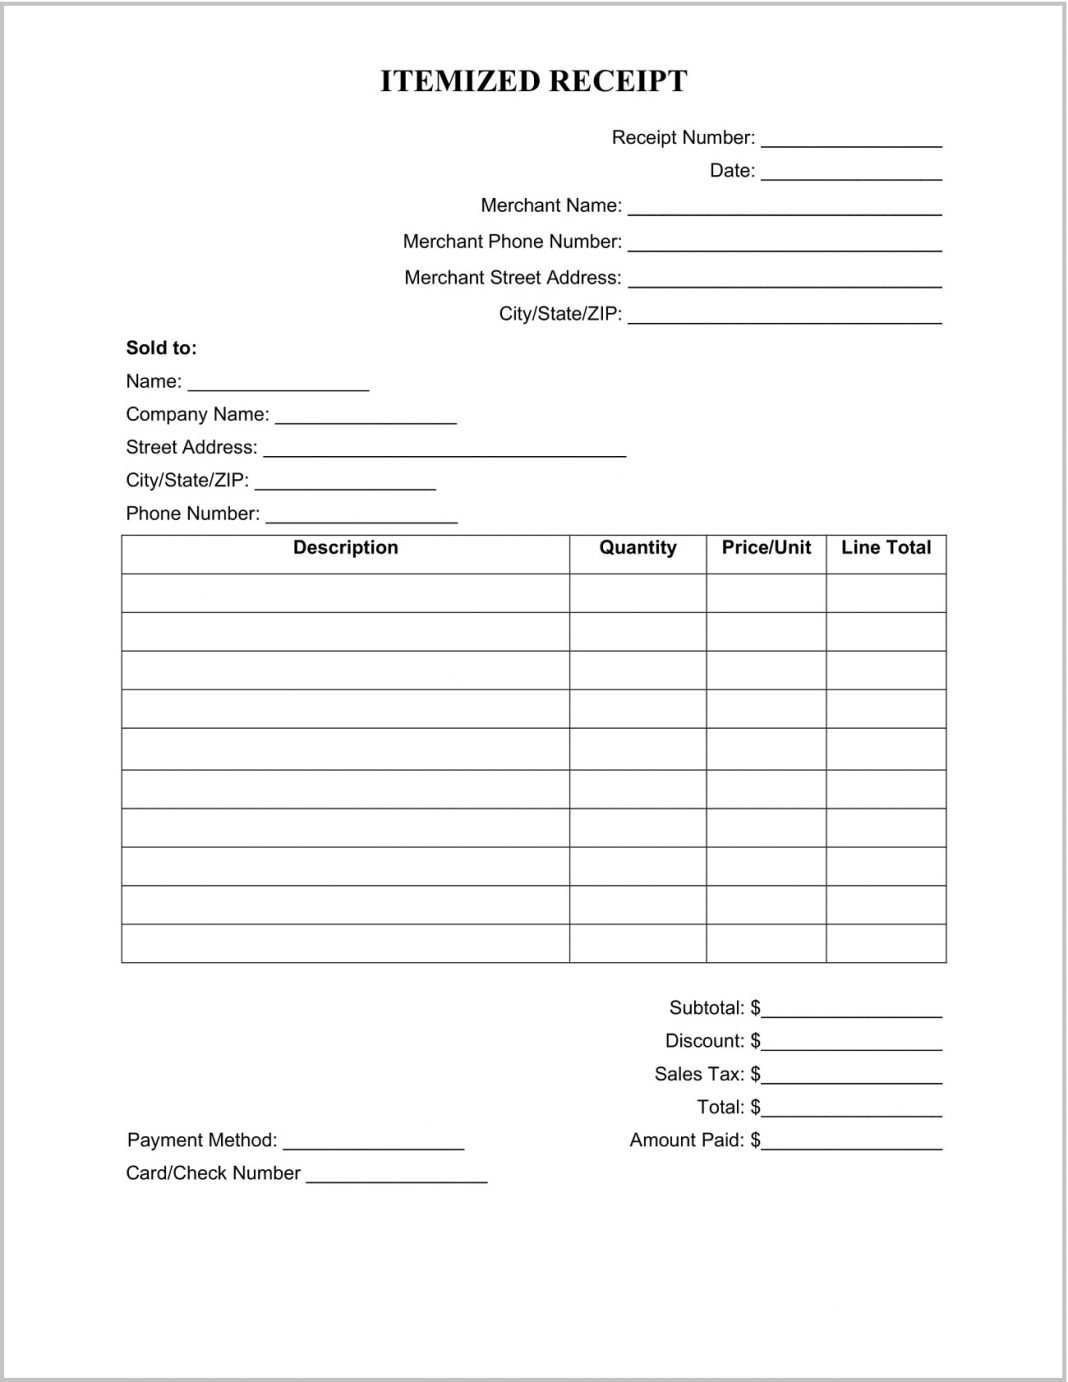 Itemized Sales Receipt Template Word Form Maker Blank Cash List Excel  Example Large